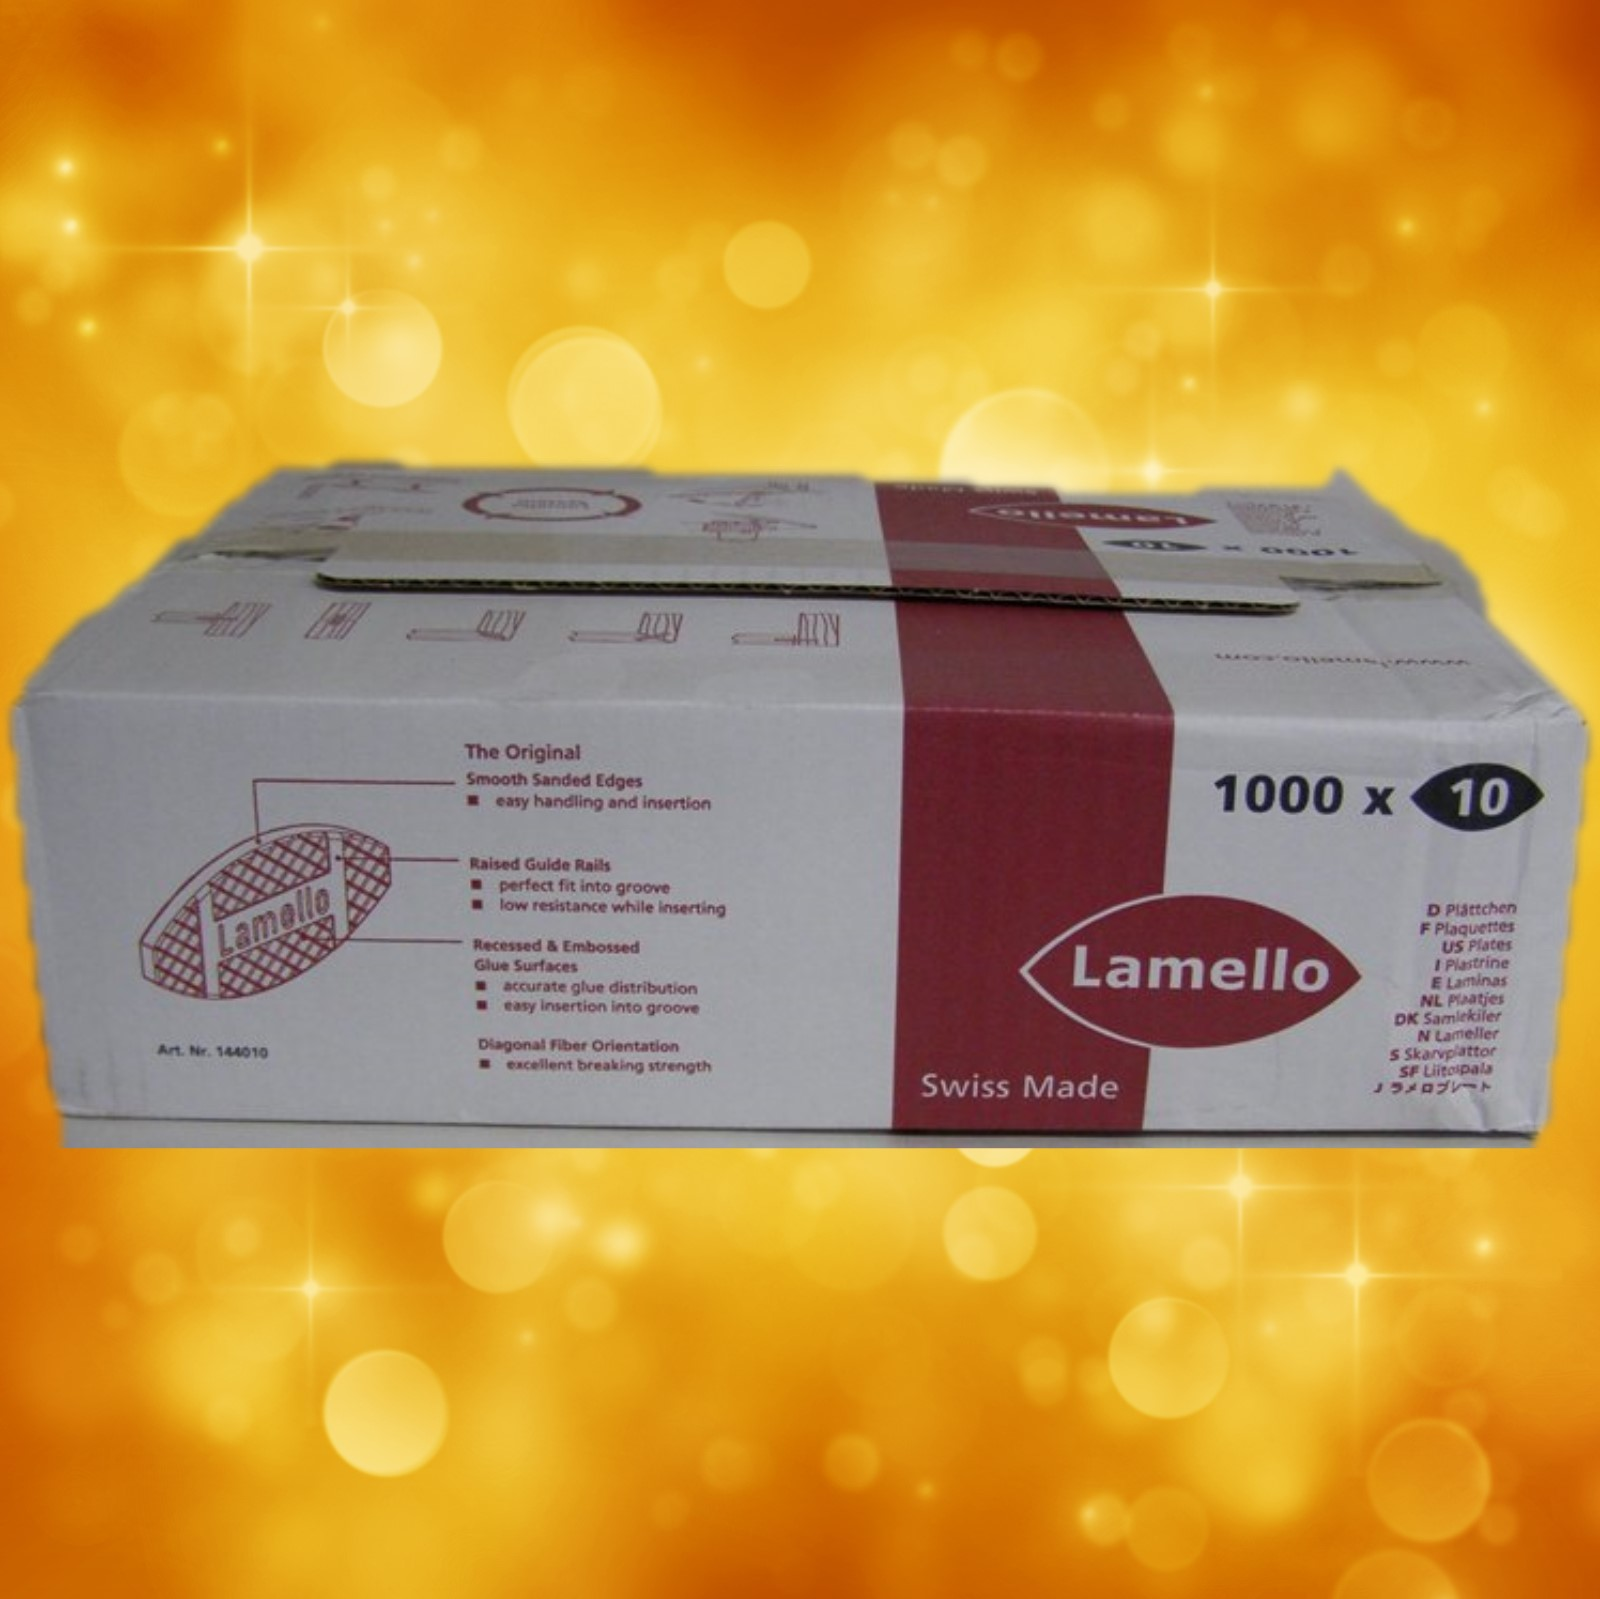 Lamello 144010 # 10 Biscuits (53 x 19 x 4 mm) Box of 1000